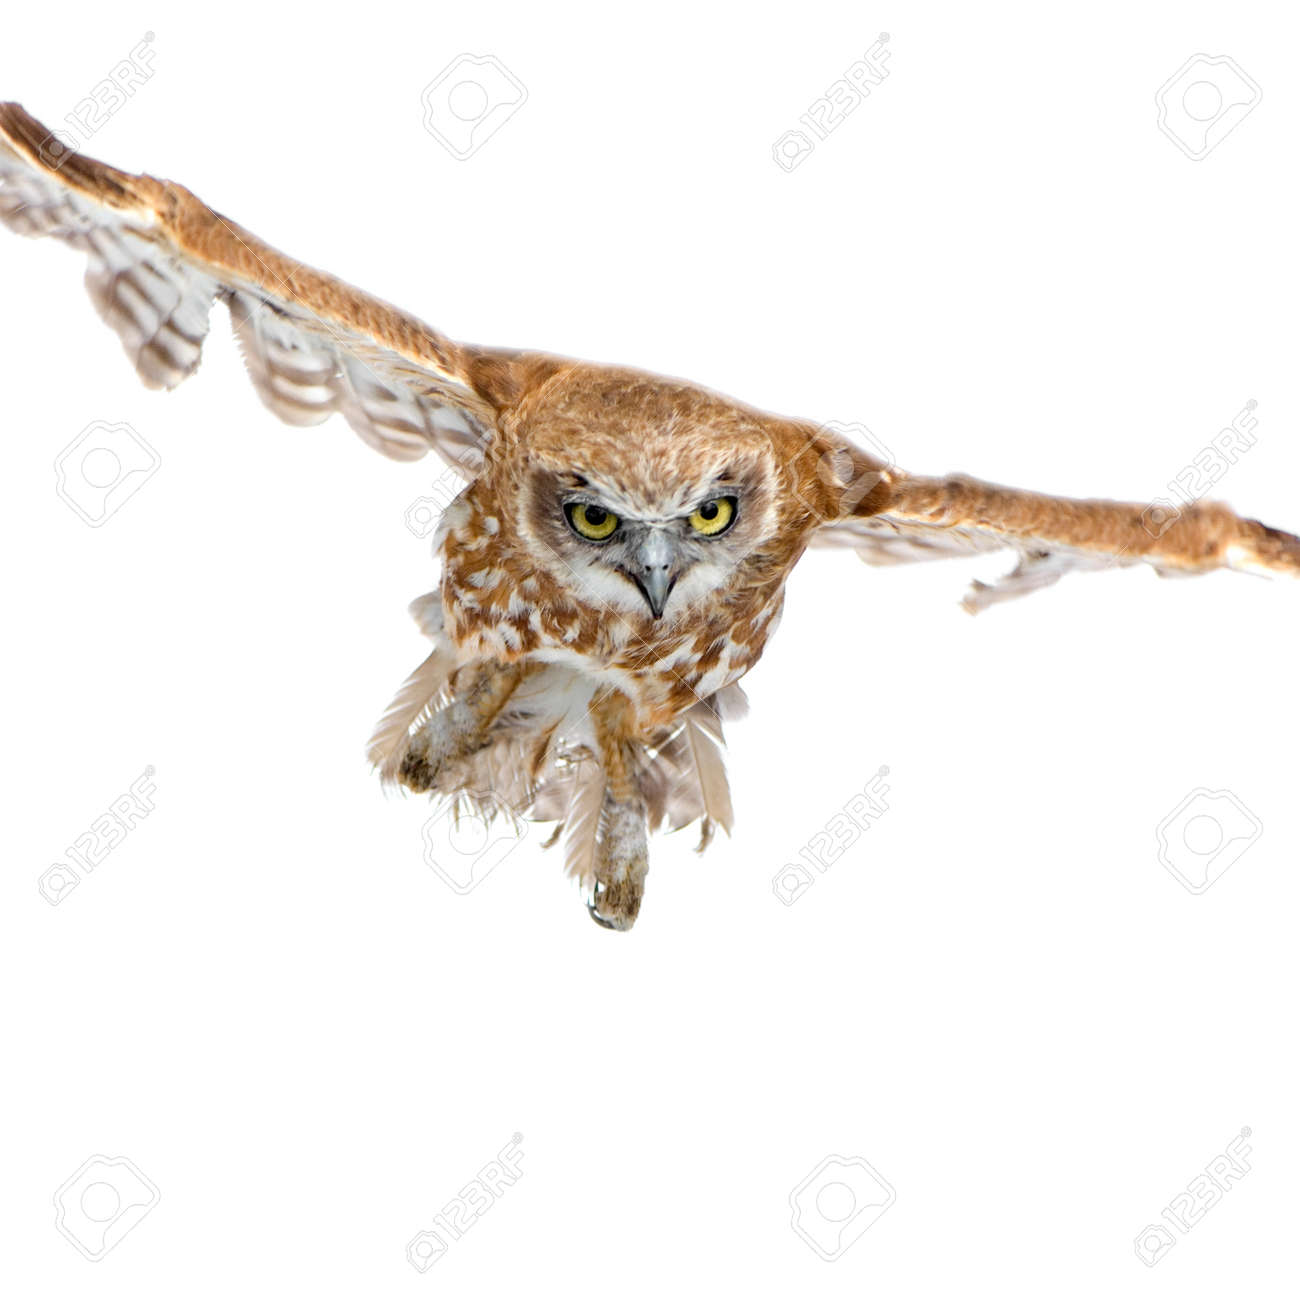 New Zealand owl (3 years) in front of a white background - 1446918